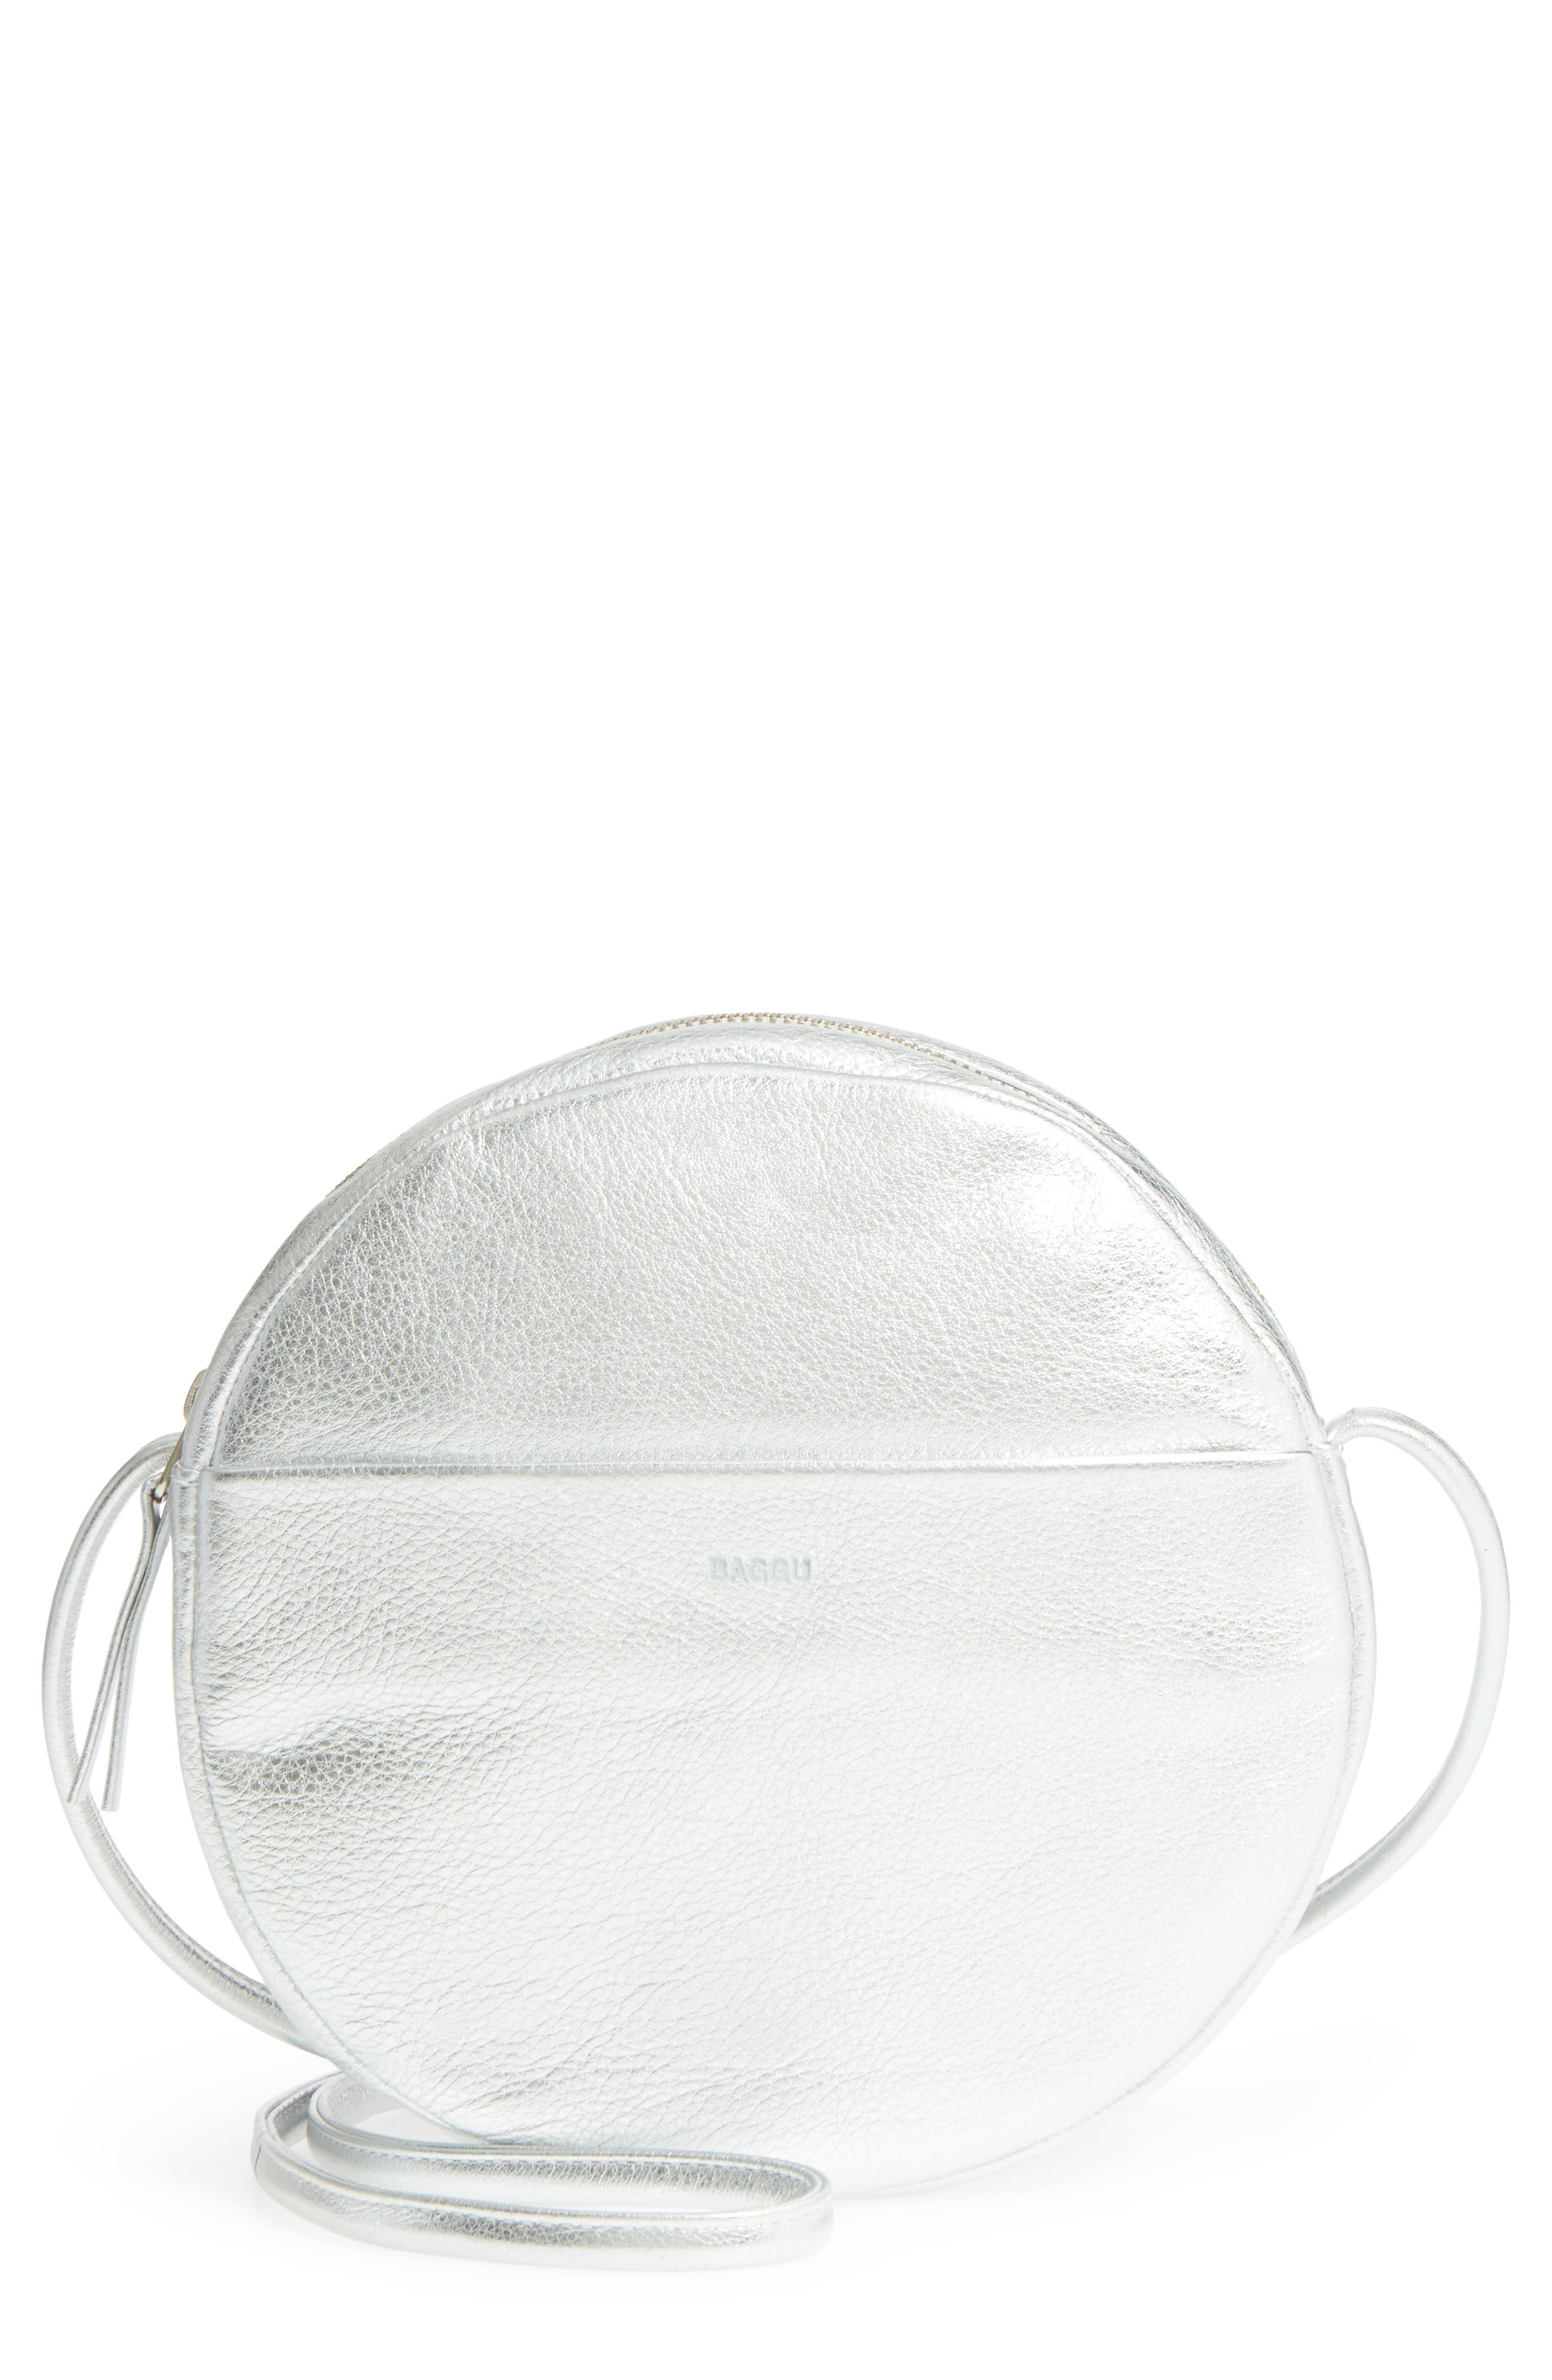 Circle Calfskin Leather Crossbody Bag,                         Main,                         color, Silver